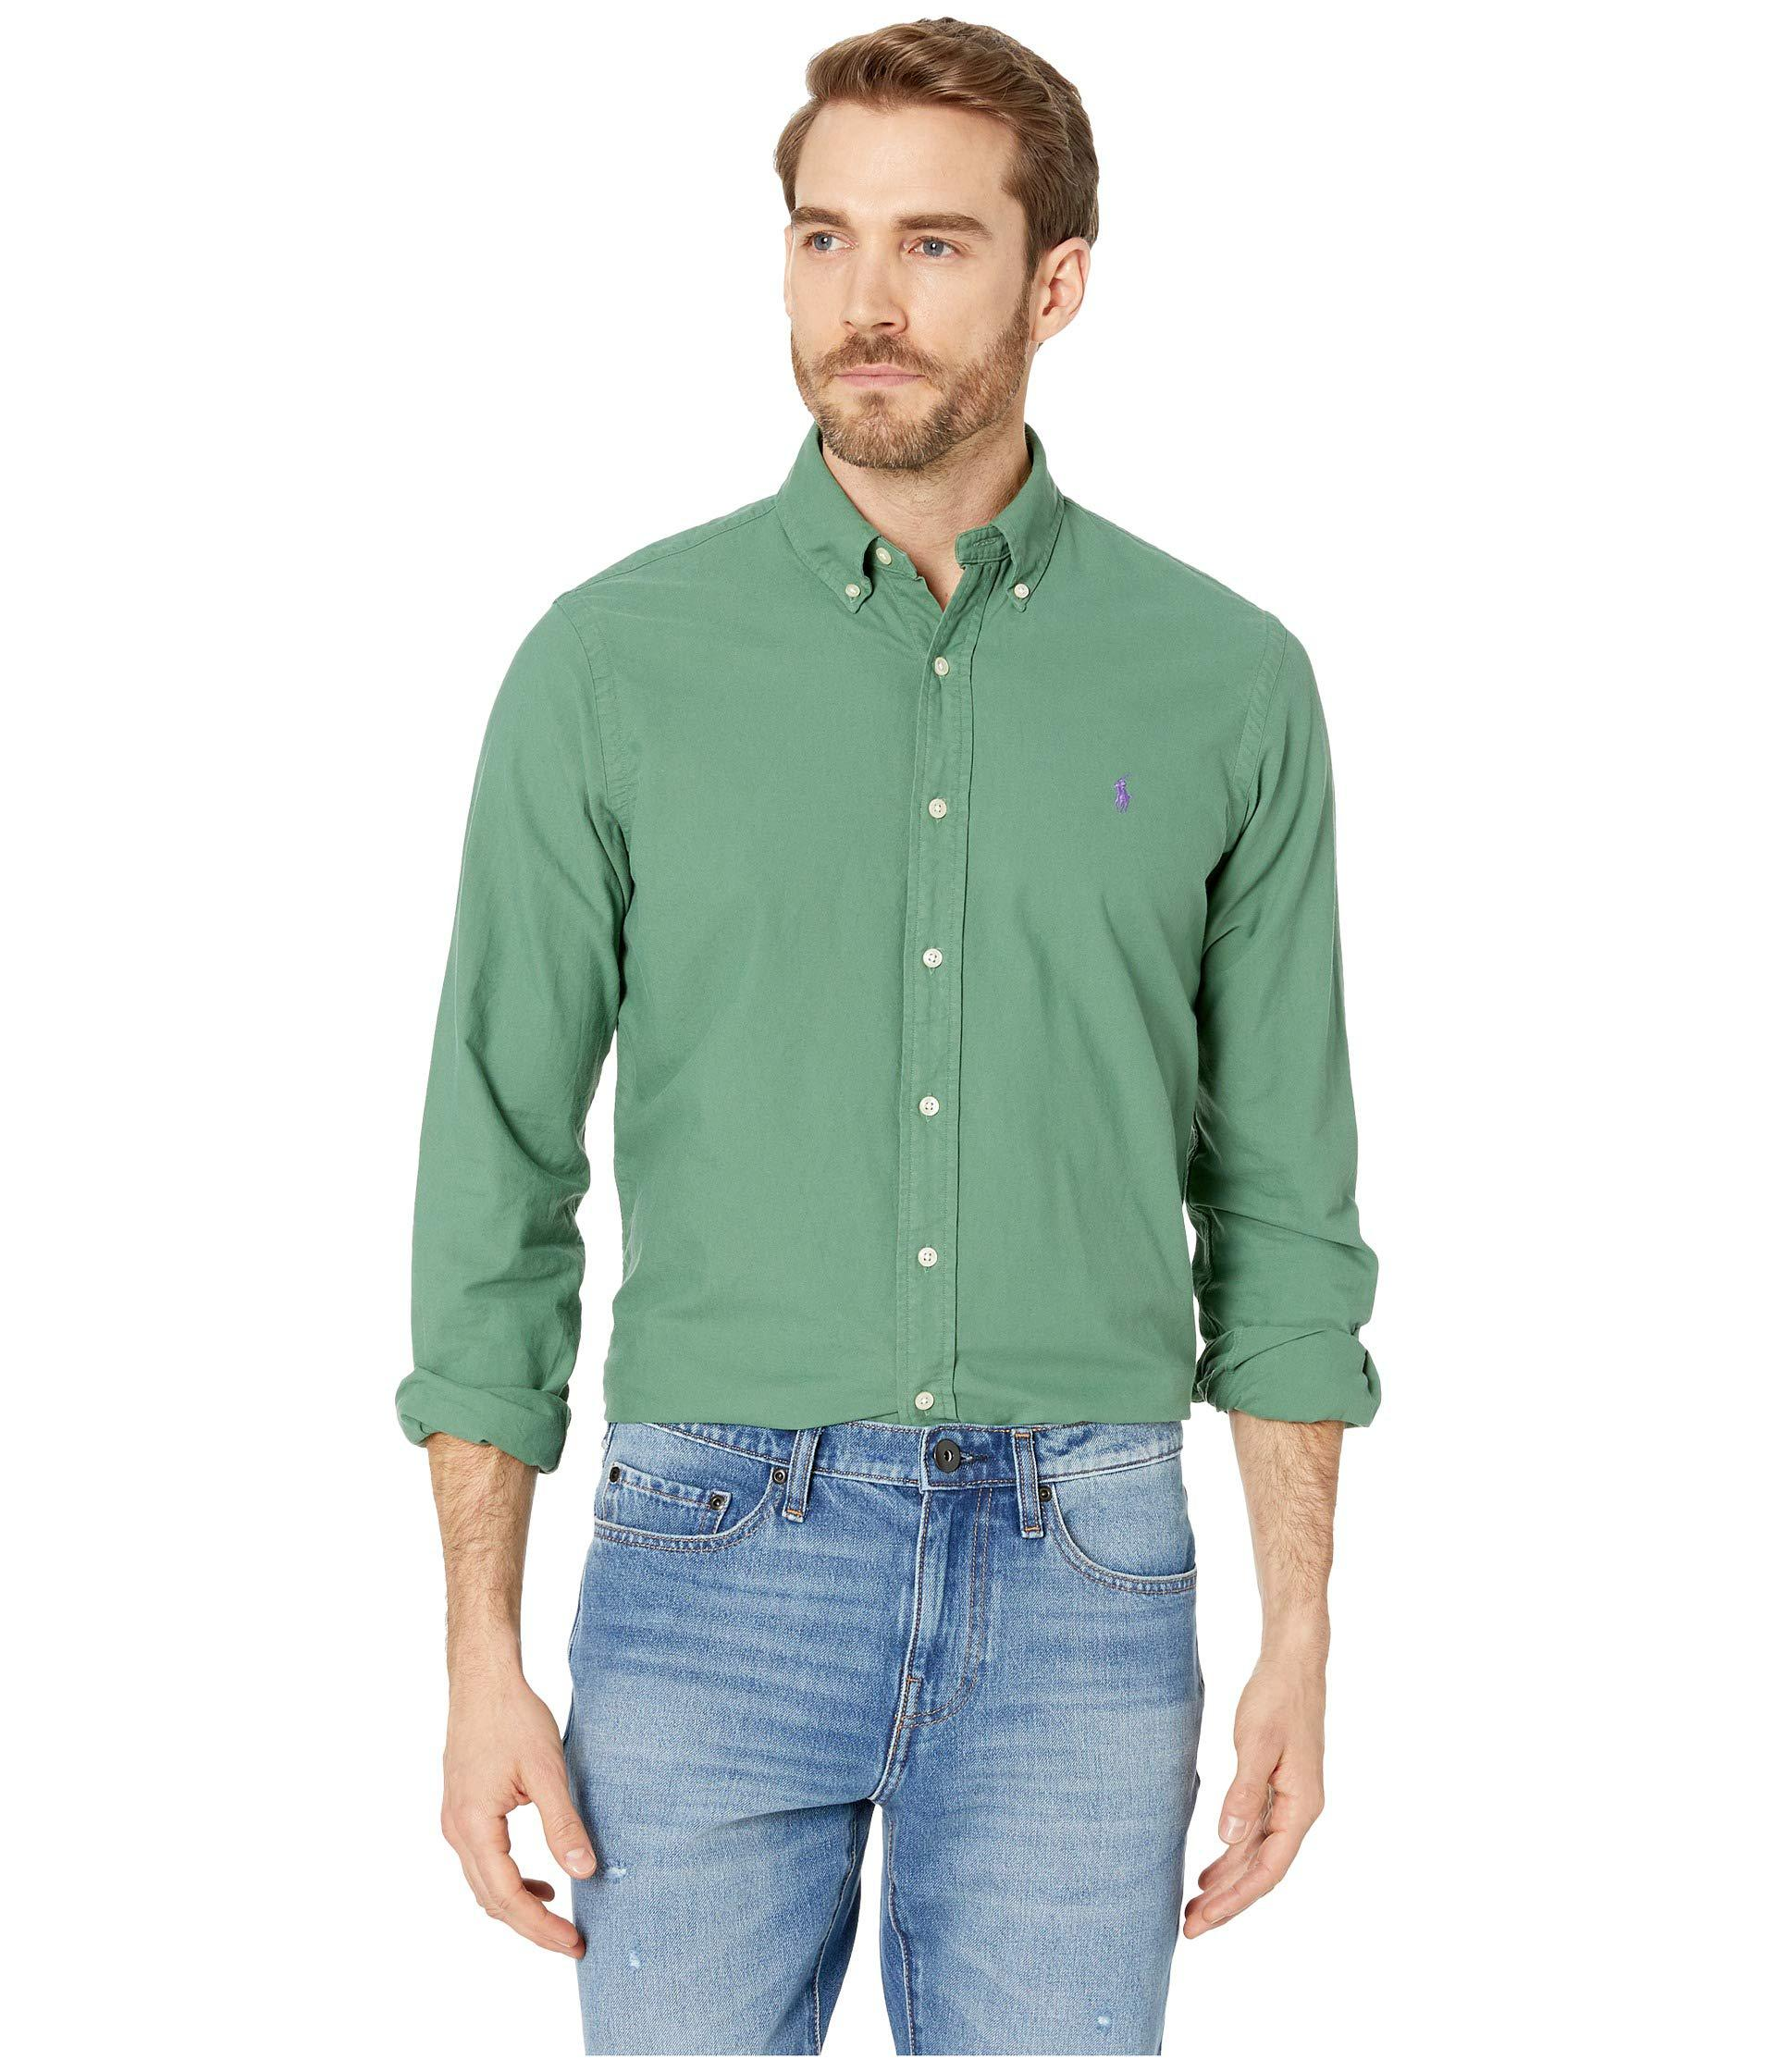 Lyst Polo Ralph Lauren Long Sleeve Solid Garment Dyed Oxford